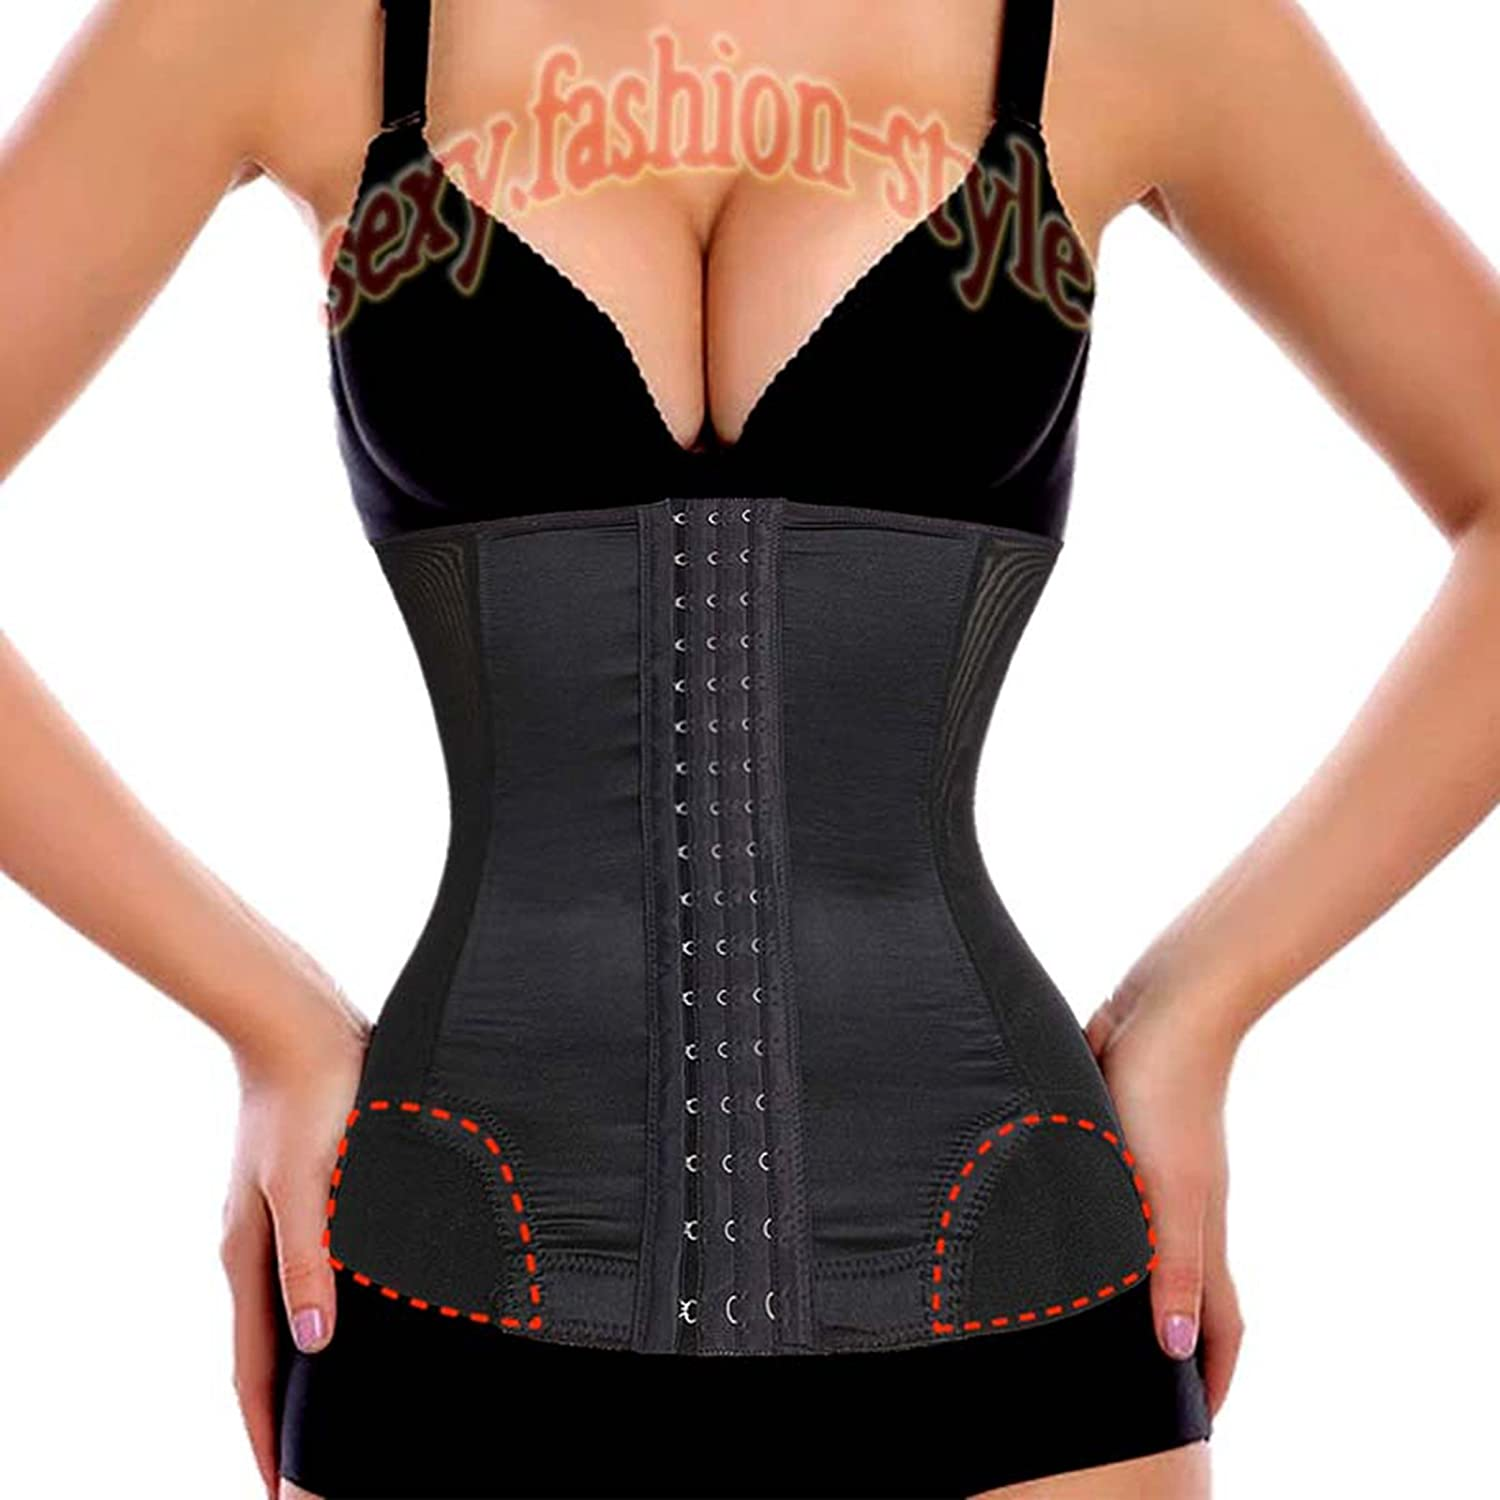 BRABIC Waist Trainer Corset Weight Loss Workout Body Shaper Tummy Girdle